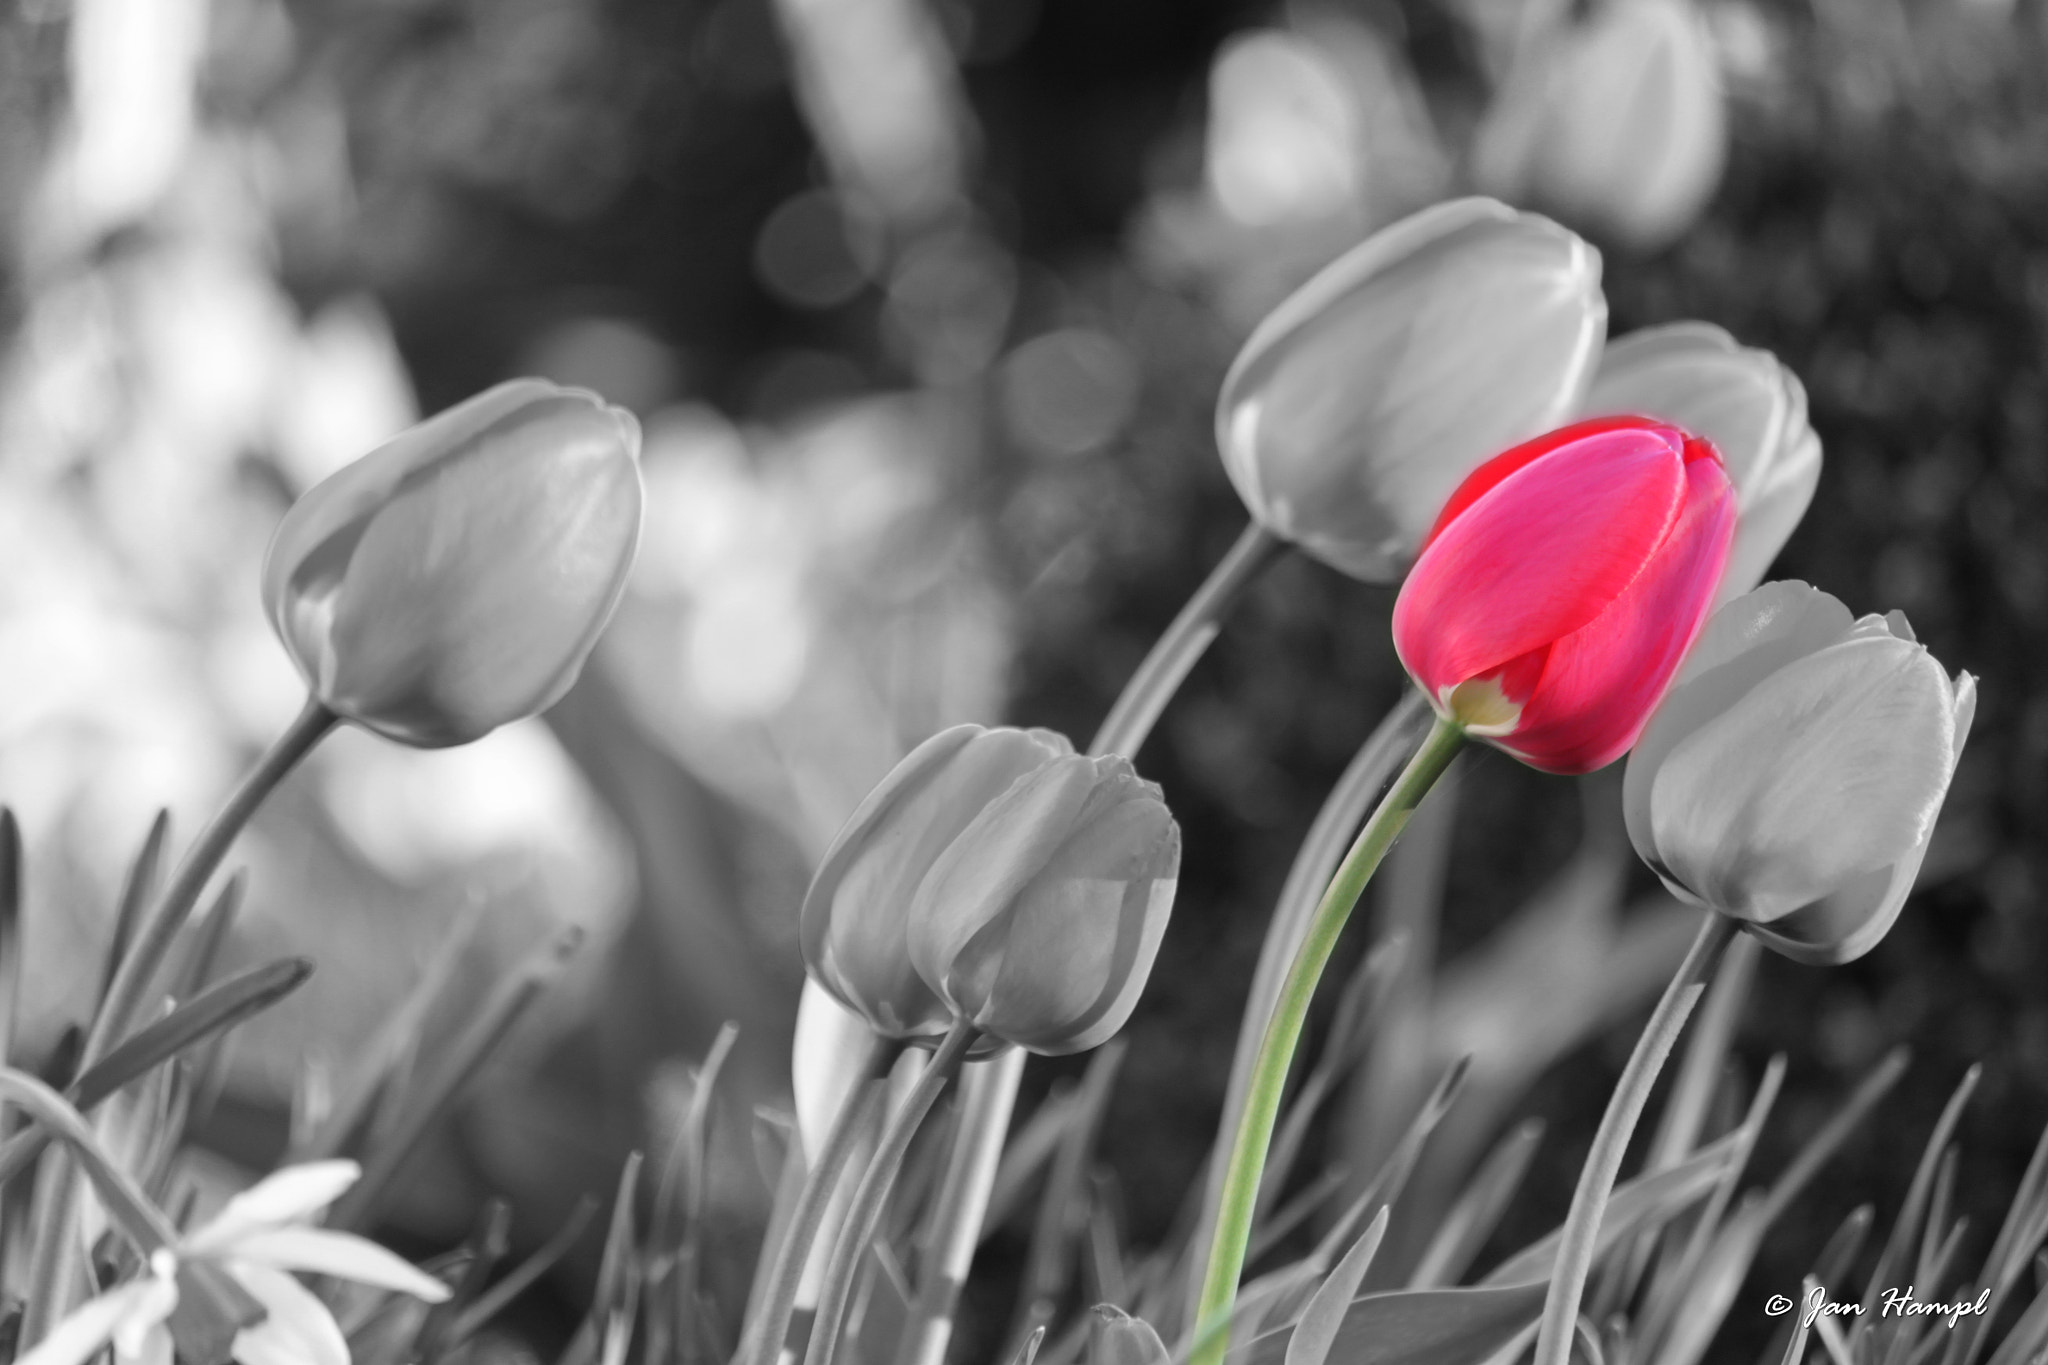 Photograph Tulips by Jan Hampl on 500px